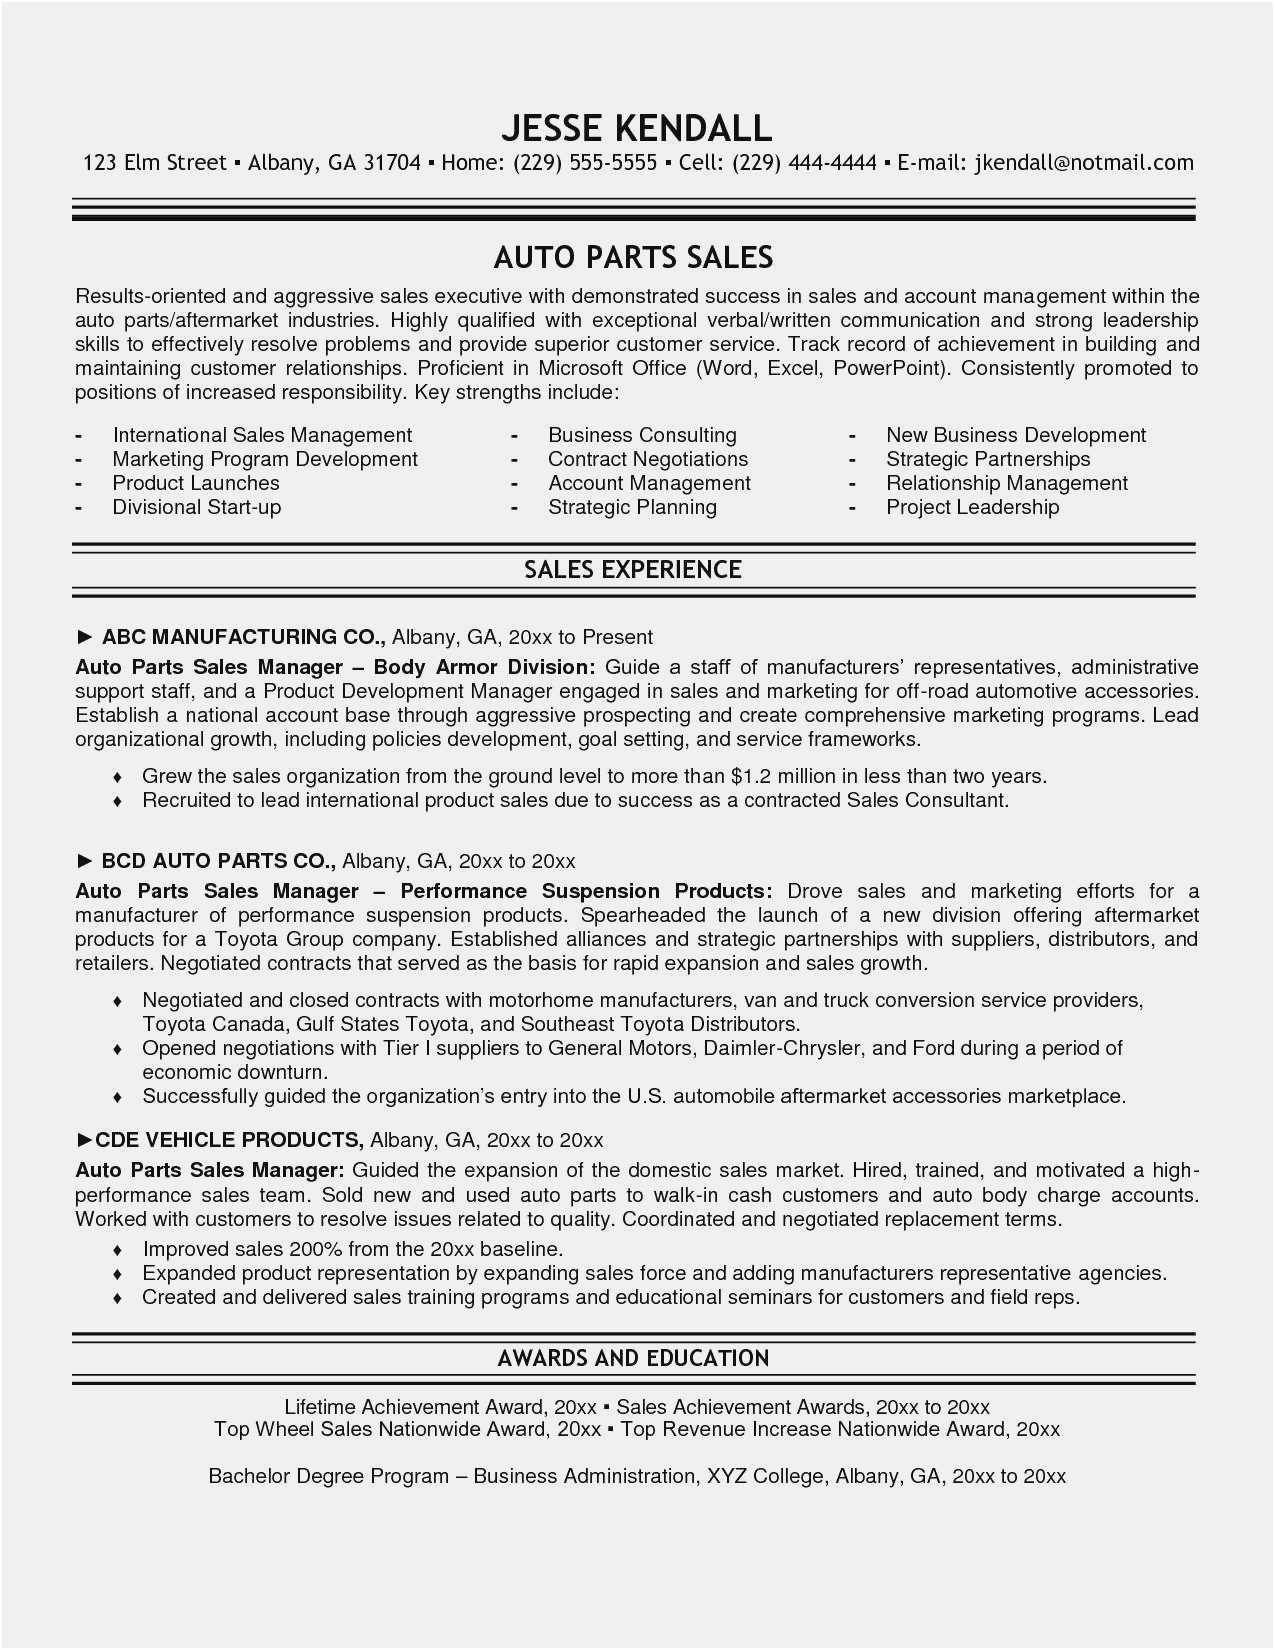 Awards And Acknowledgements Resume Unique Free Collection 59 Awards Resume Simple Cover Letter For Resume Marketing Plan Template Good Resume Examples